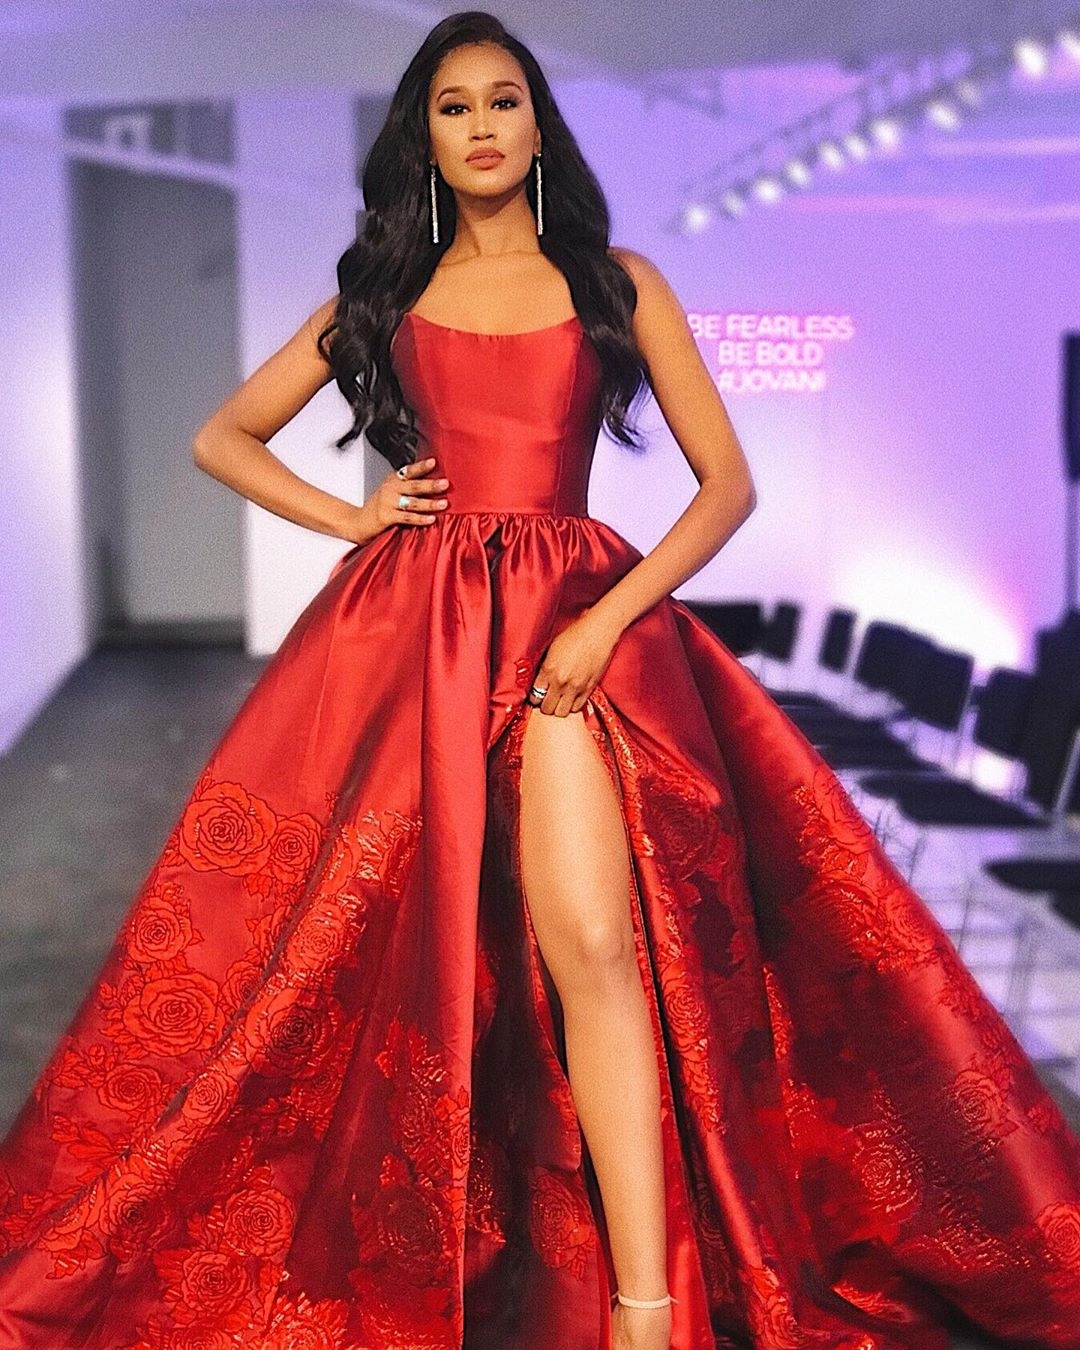 cape-verdean-beauty-andreia-givau-wins-miss-new-york-2020-+-a-look-at-her-style